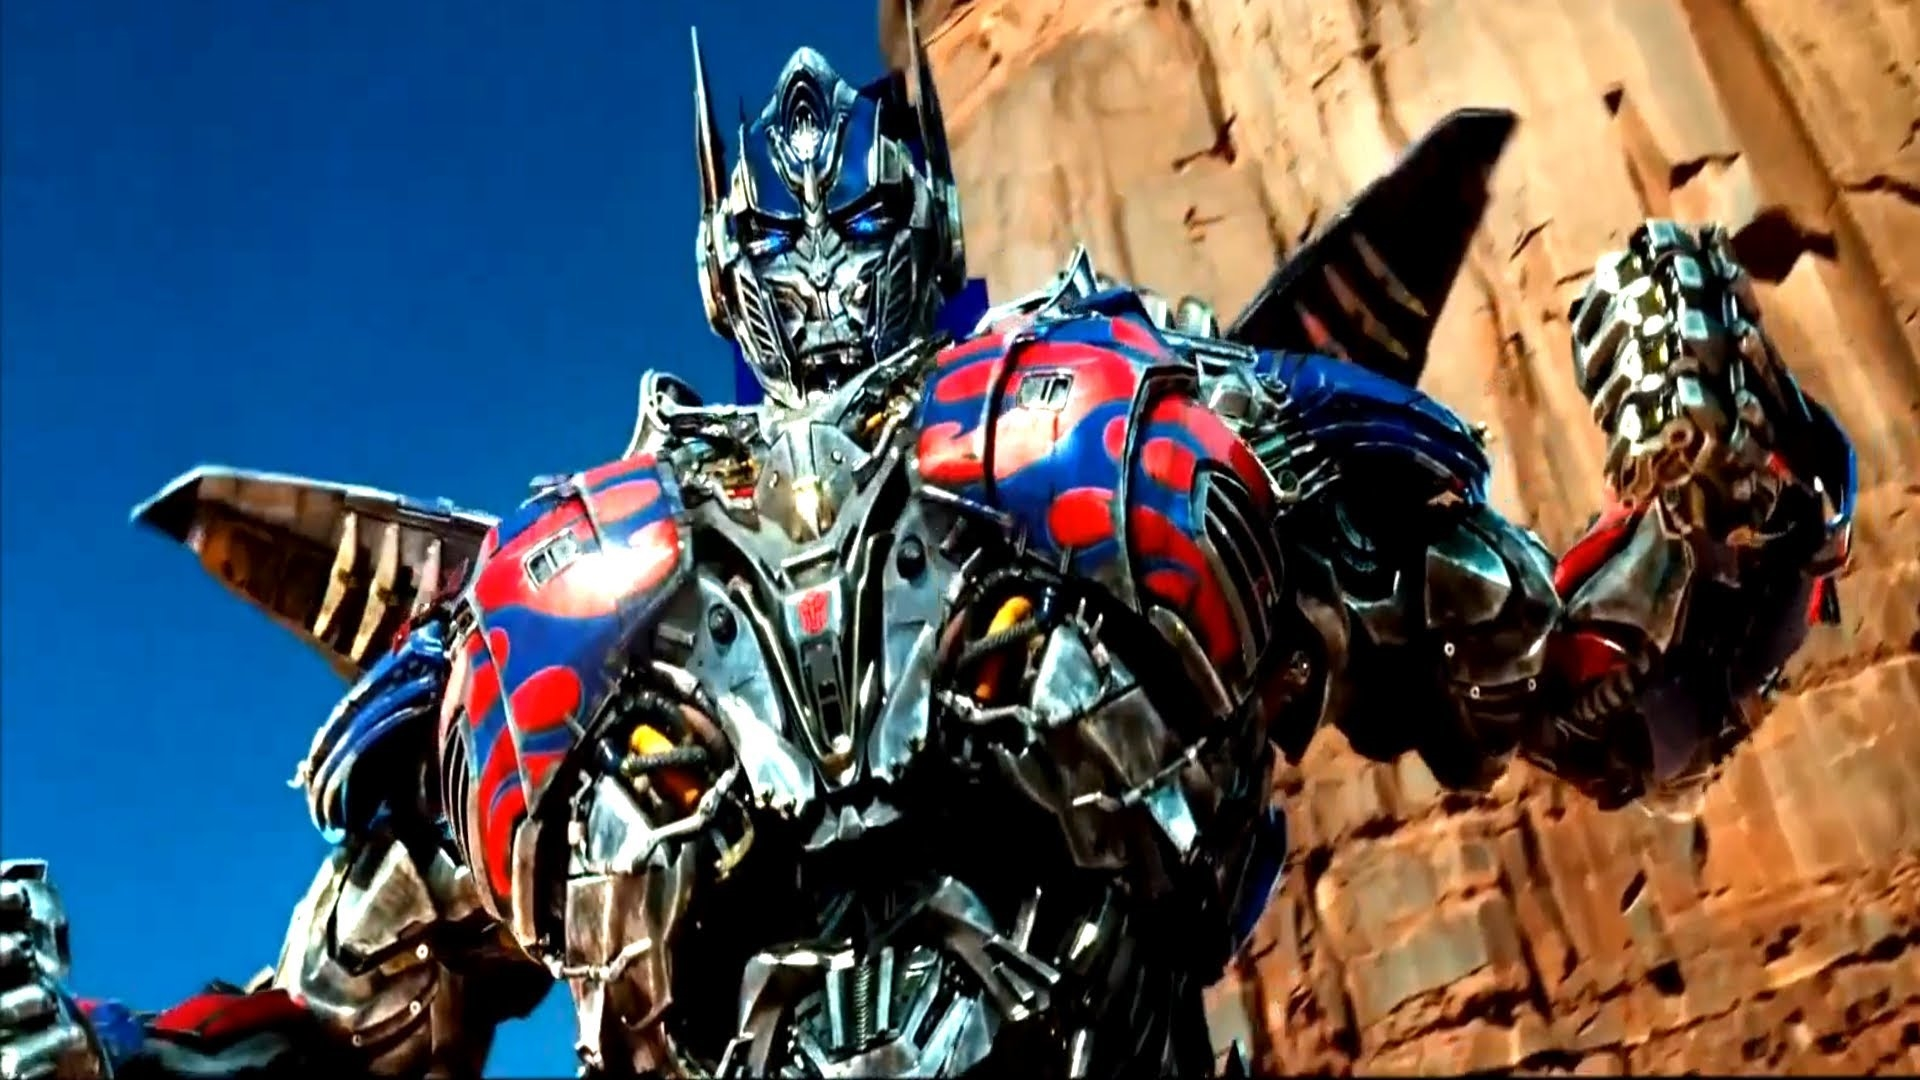 optimus prime revenge of the fallen wallpaper